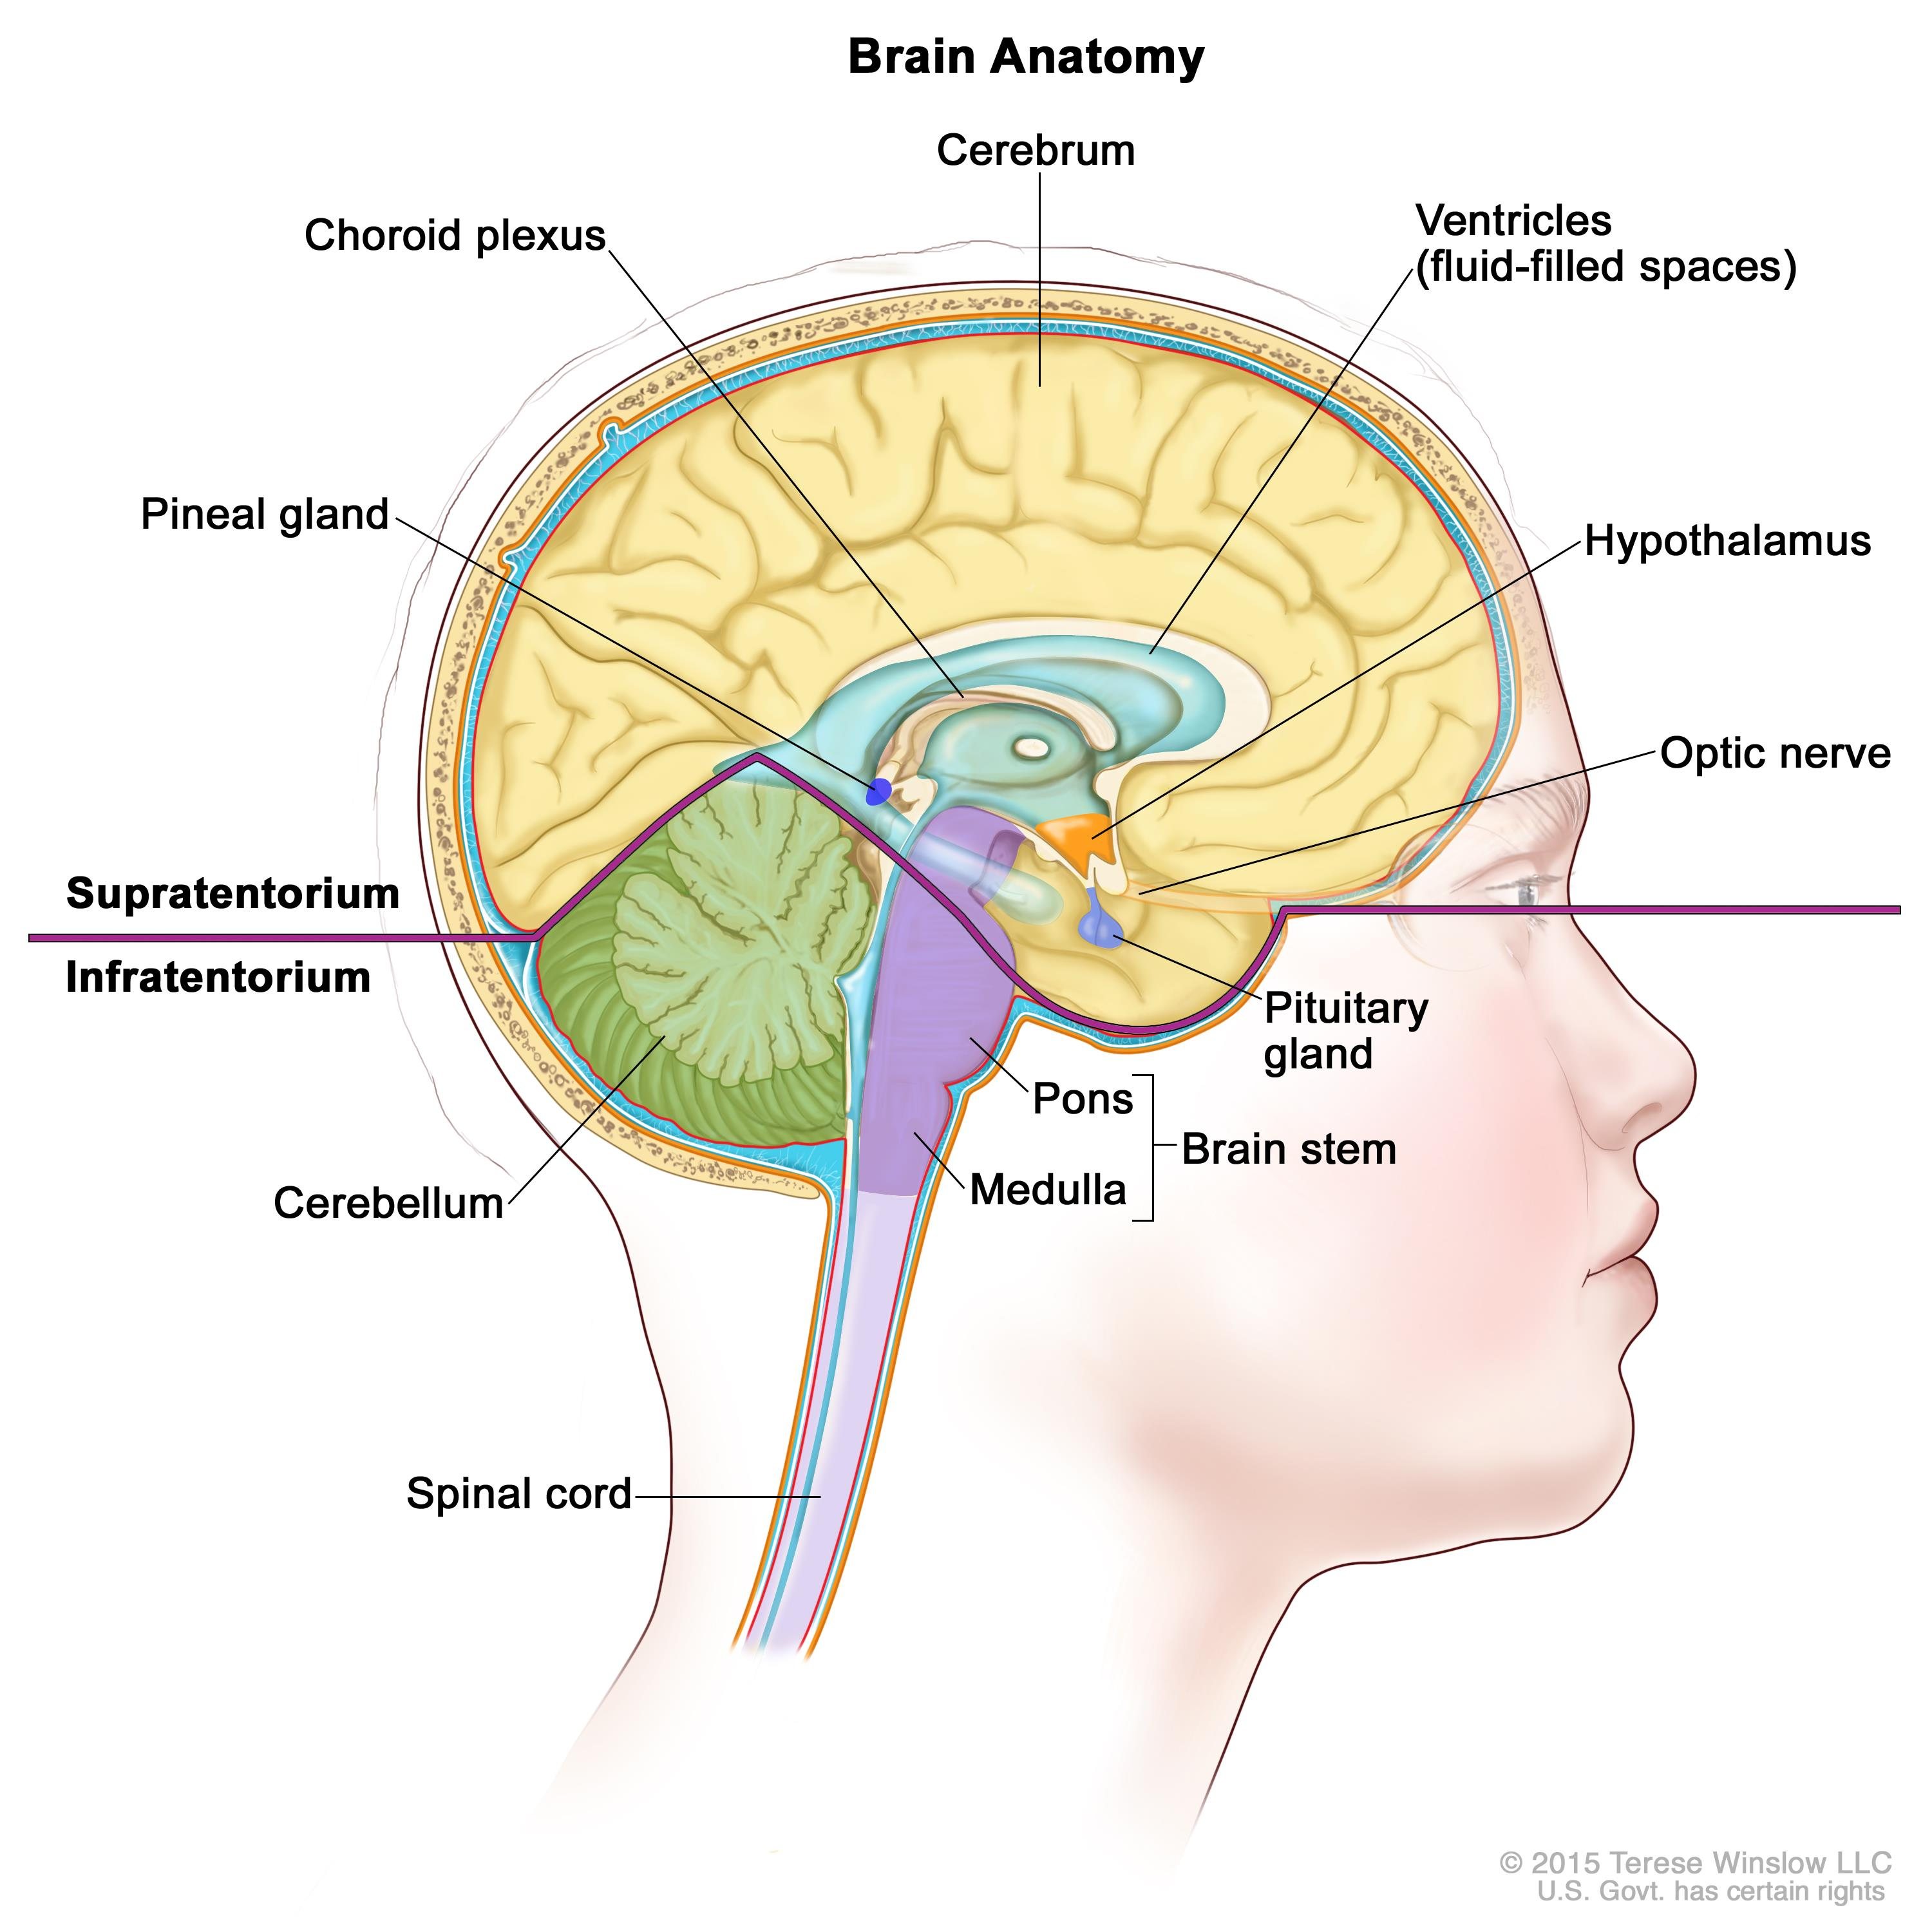 the main features of the human brain When combined into networks, neurons allow the human body memory, emotion, and abstract thought as well as basic reflexes the human brain contains an.